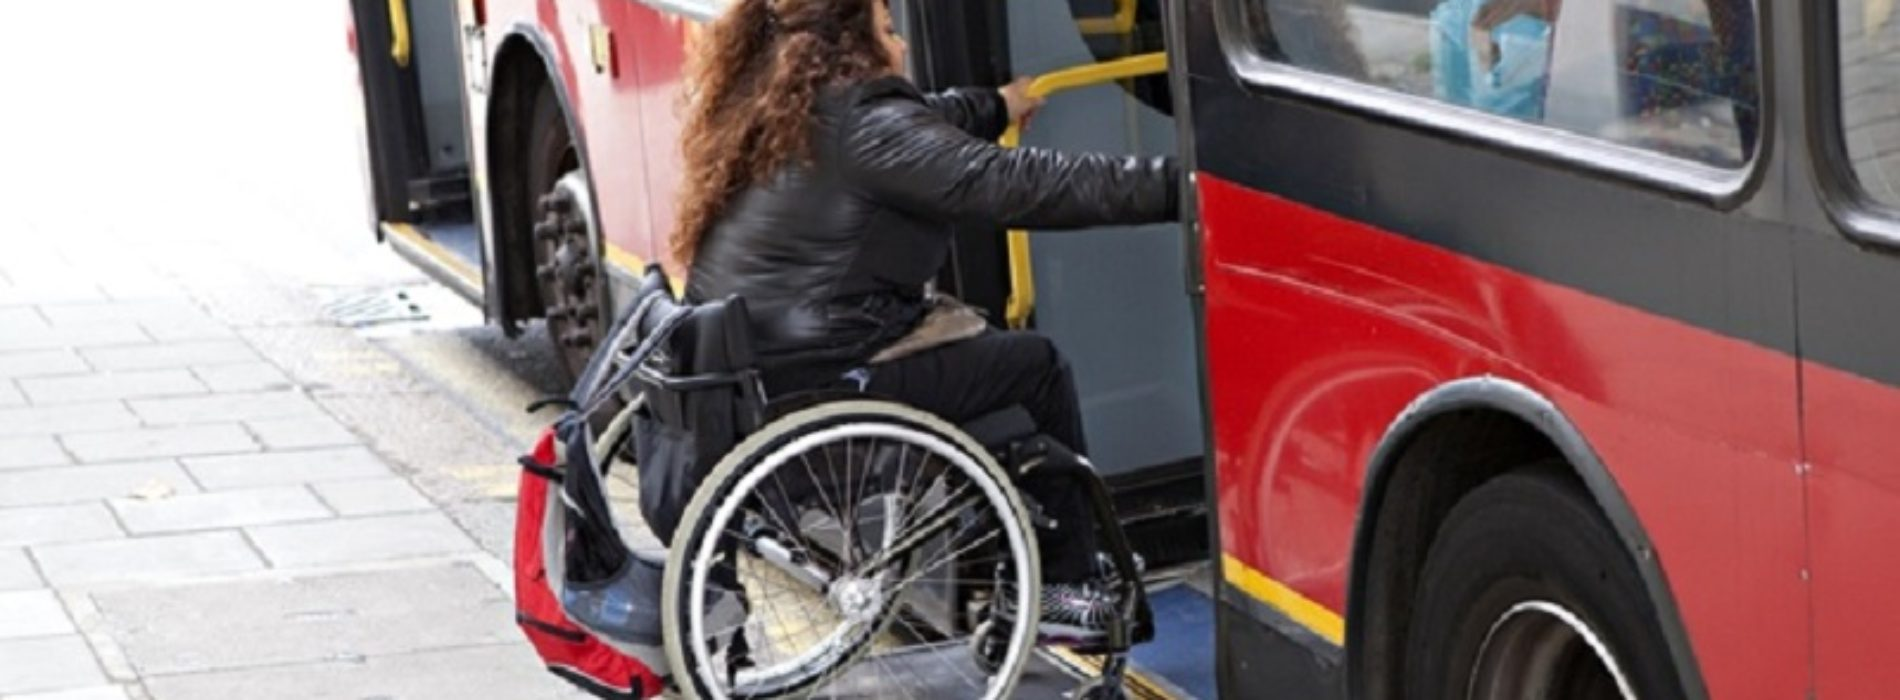 Could the average Joe spend the day in a wheelchair?